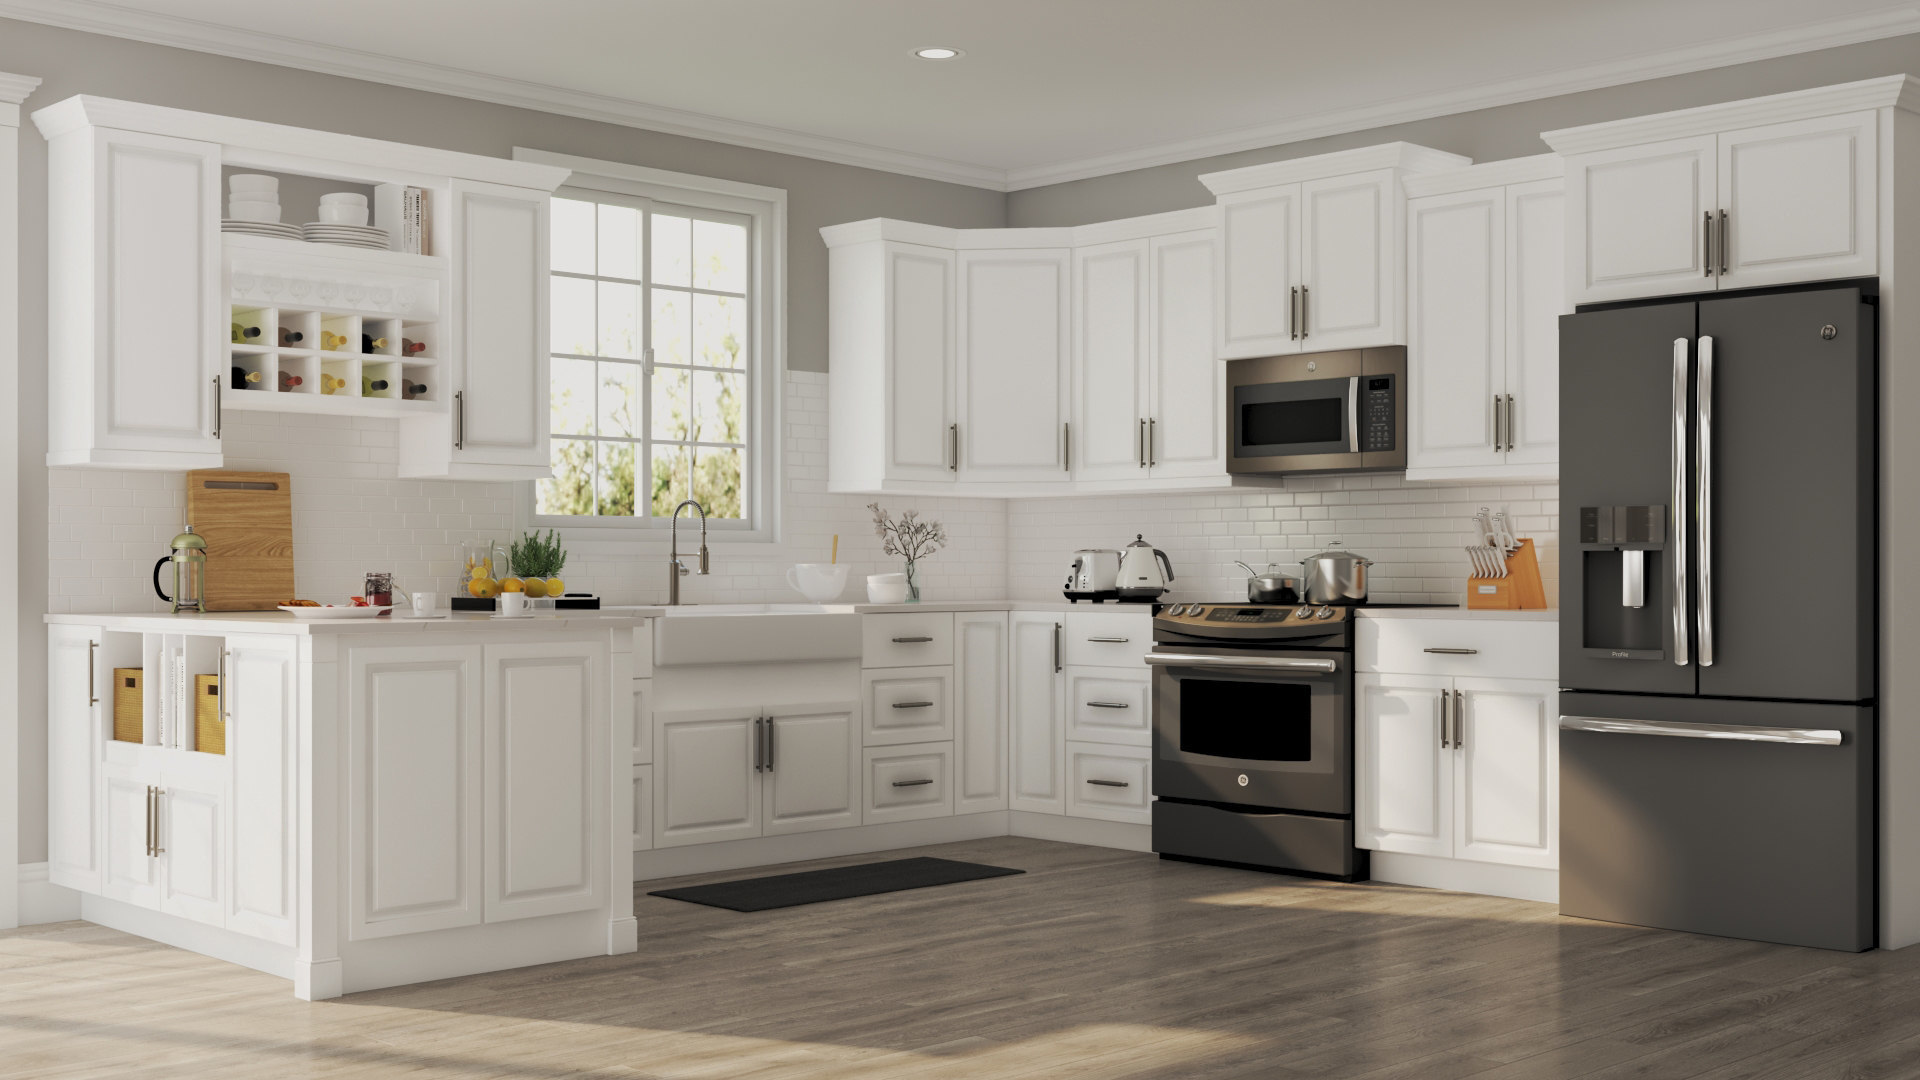 home depot cabinets kitchen grey rugs hampton base in white  the